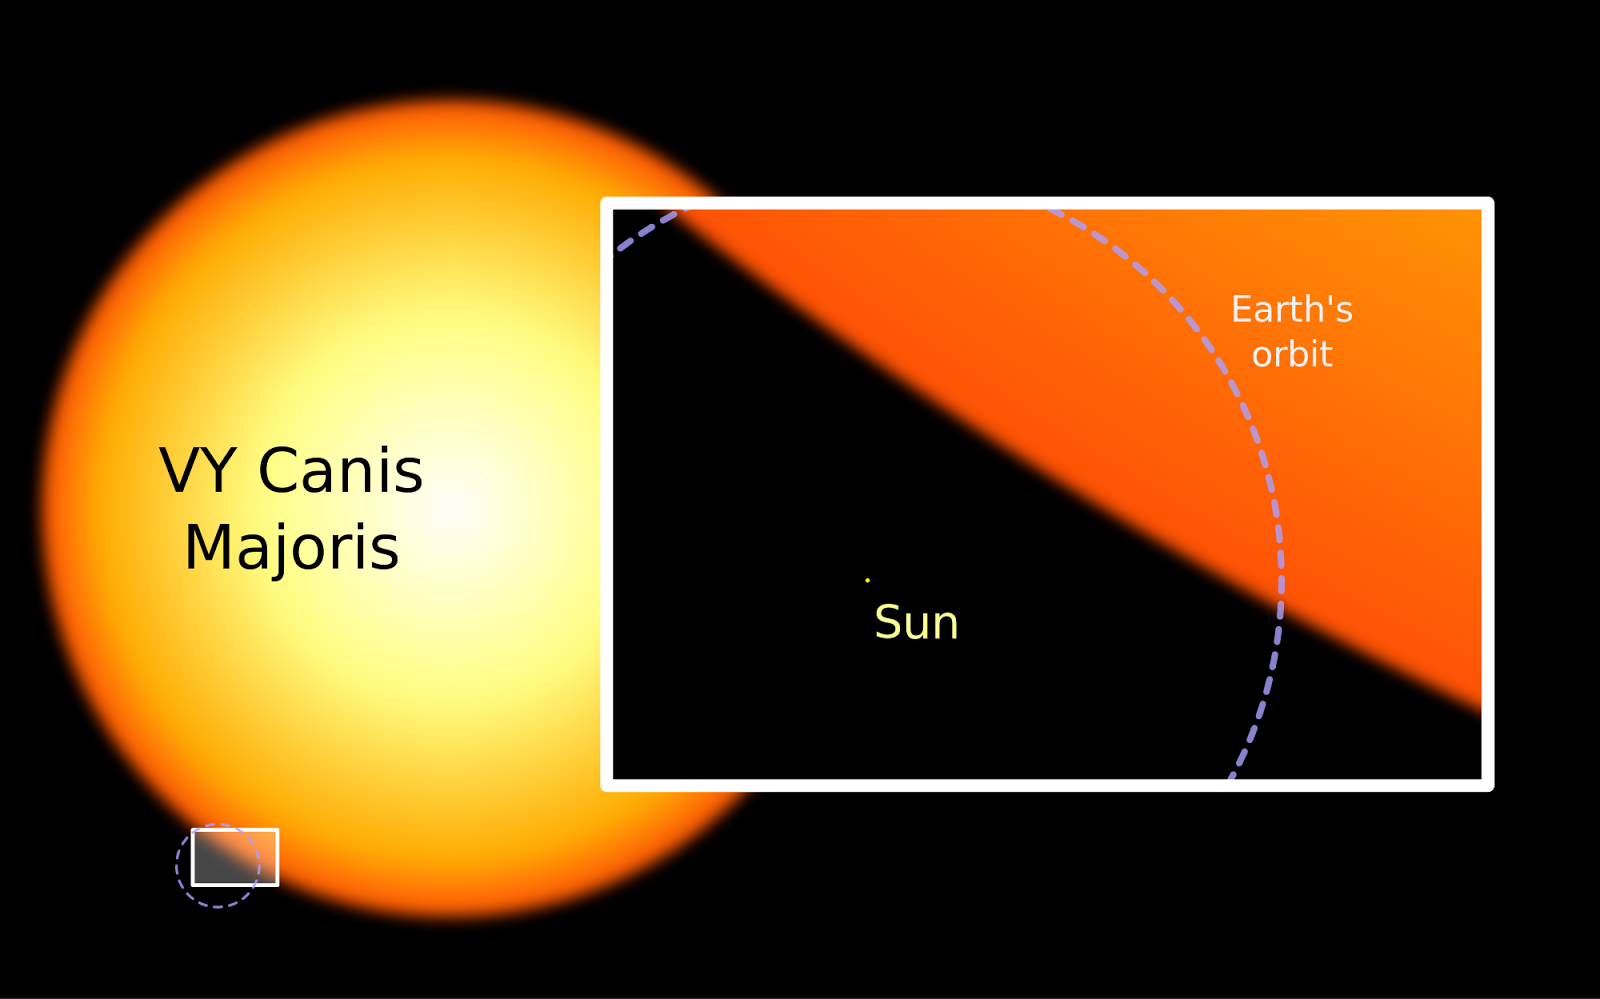 The hypergiant, VY Canis Majoris. Imagine living on a planet that orbits a hypergiant, whose circumference is so big it'd take a jetliner ~1,100 years to circumnavigate even if it were able to go full speed without ever stopping.... Yeaaahhh.... no thanks. VY Canis Majoris obviously isn't a star in the main sequence, but it is a prime example of '   nope   '.    Image source: Wikipedia